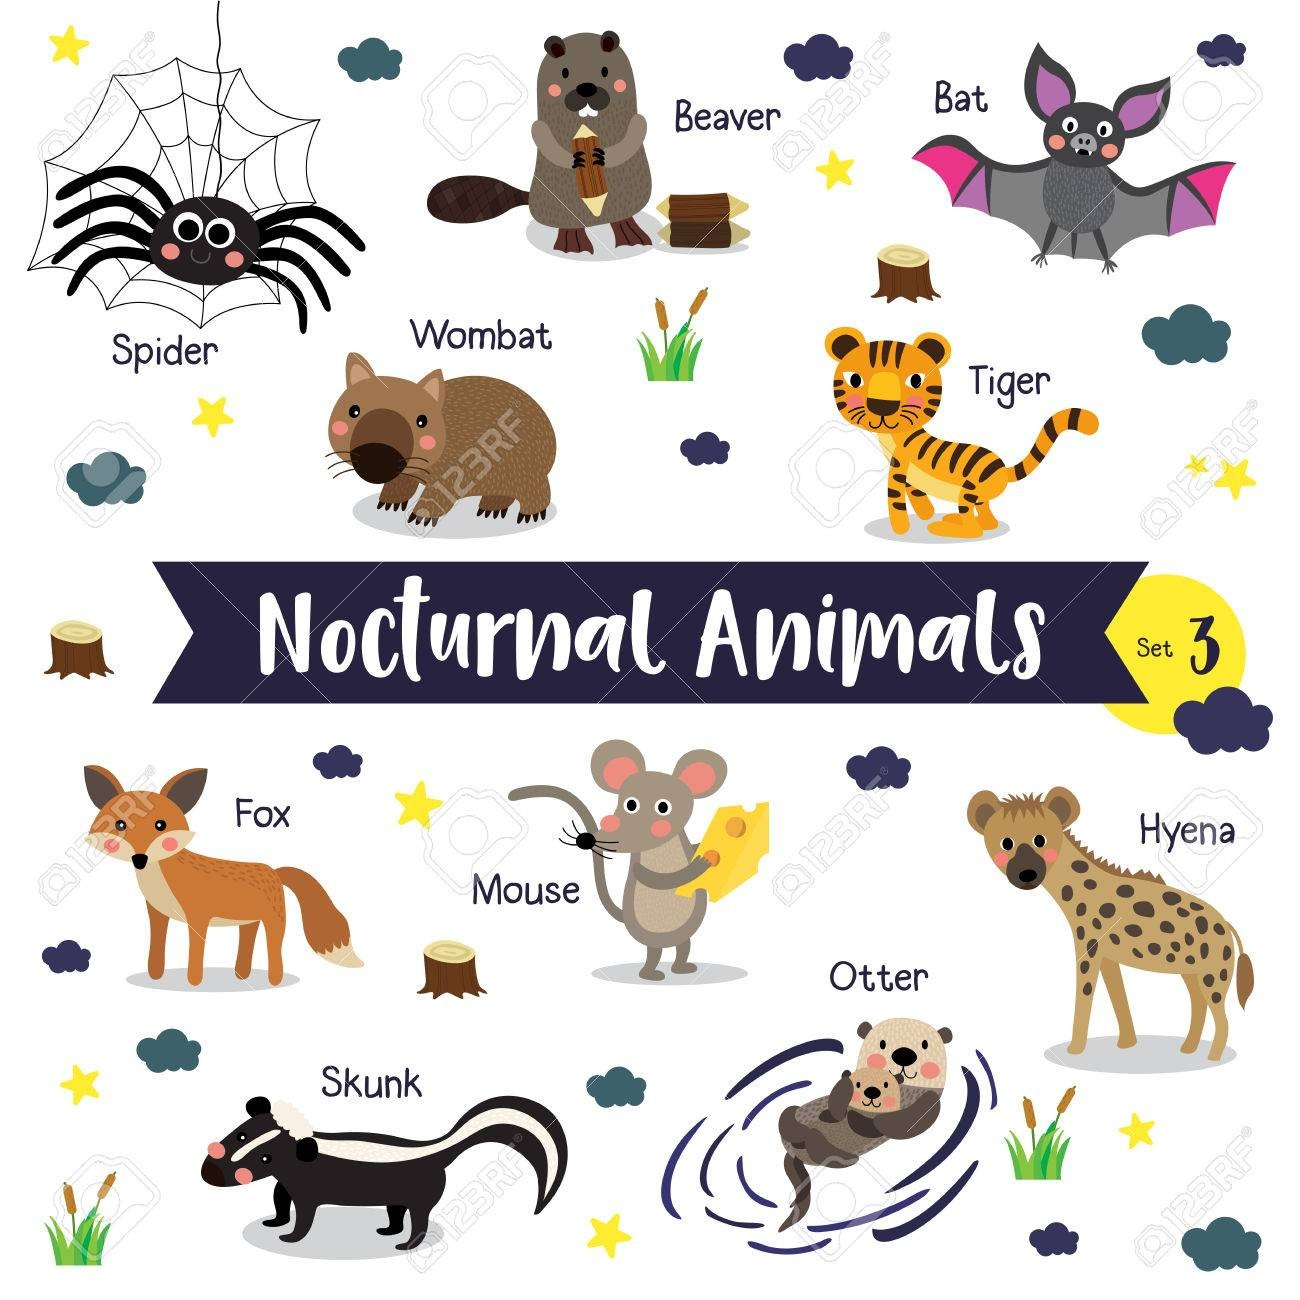 Nocturnal Animals Clipart 1 Clipart Station